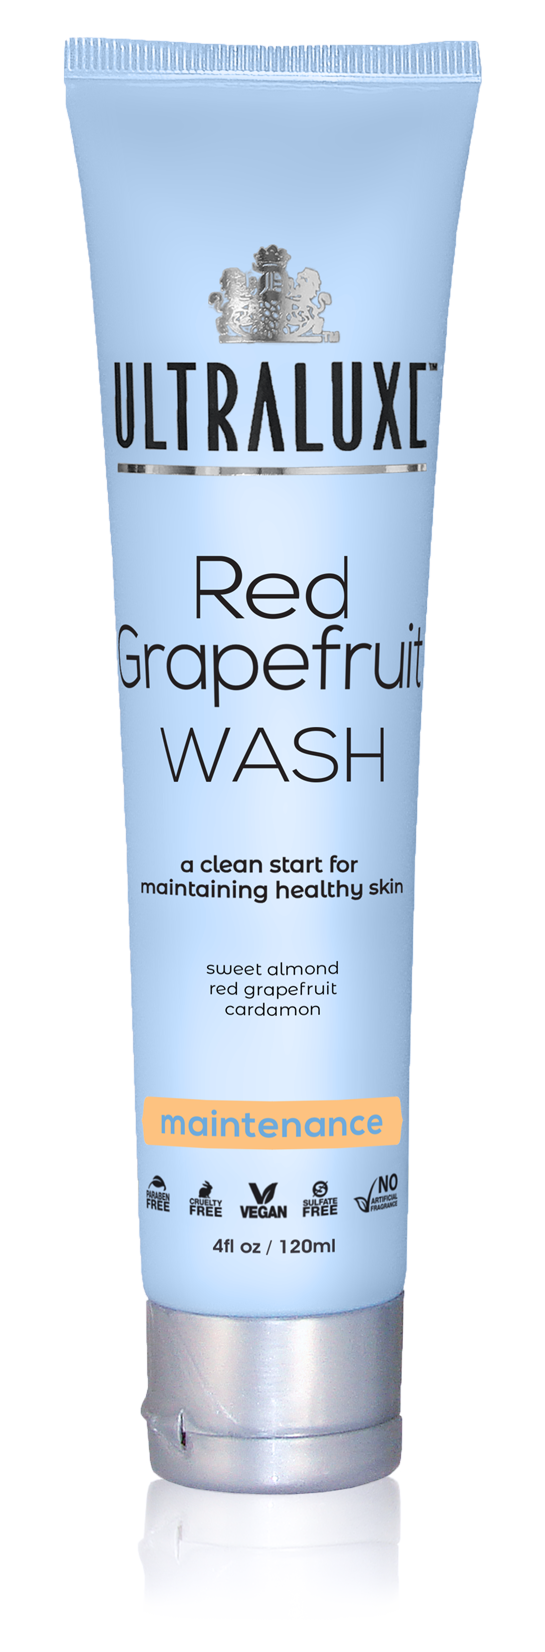 Red Grapefruit Wash